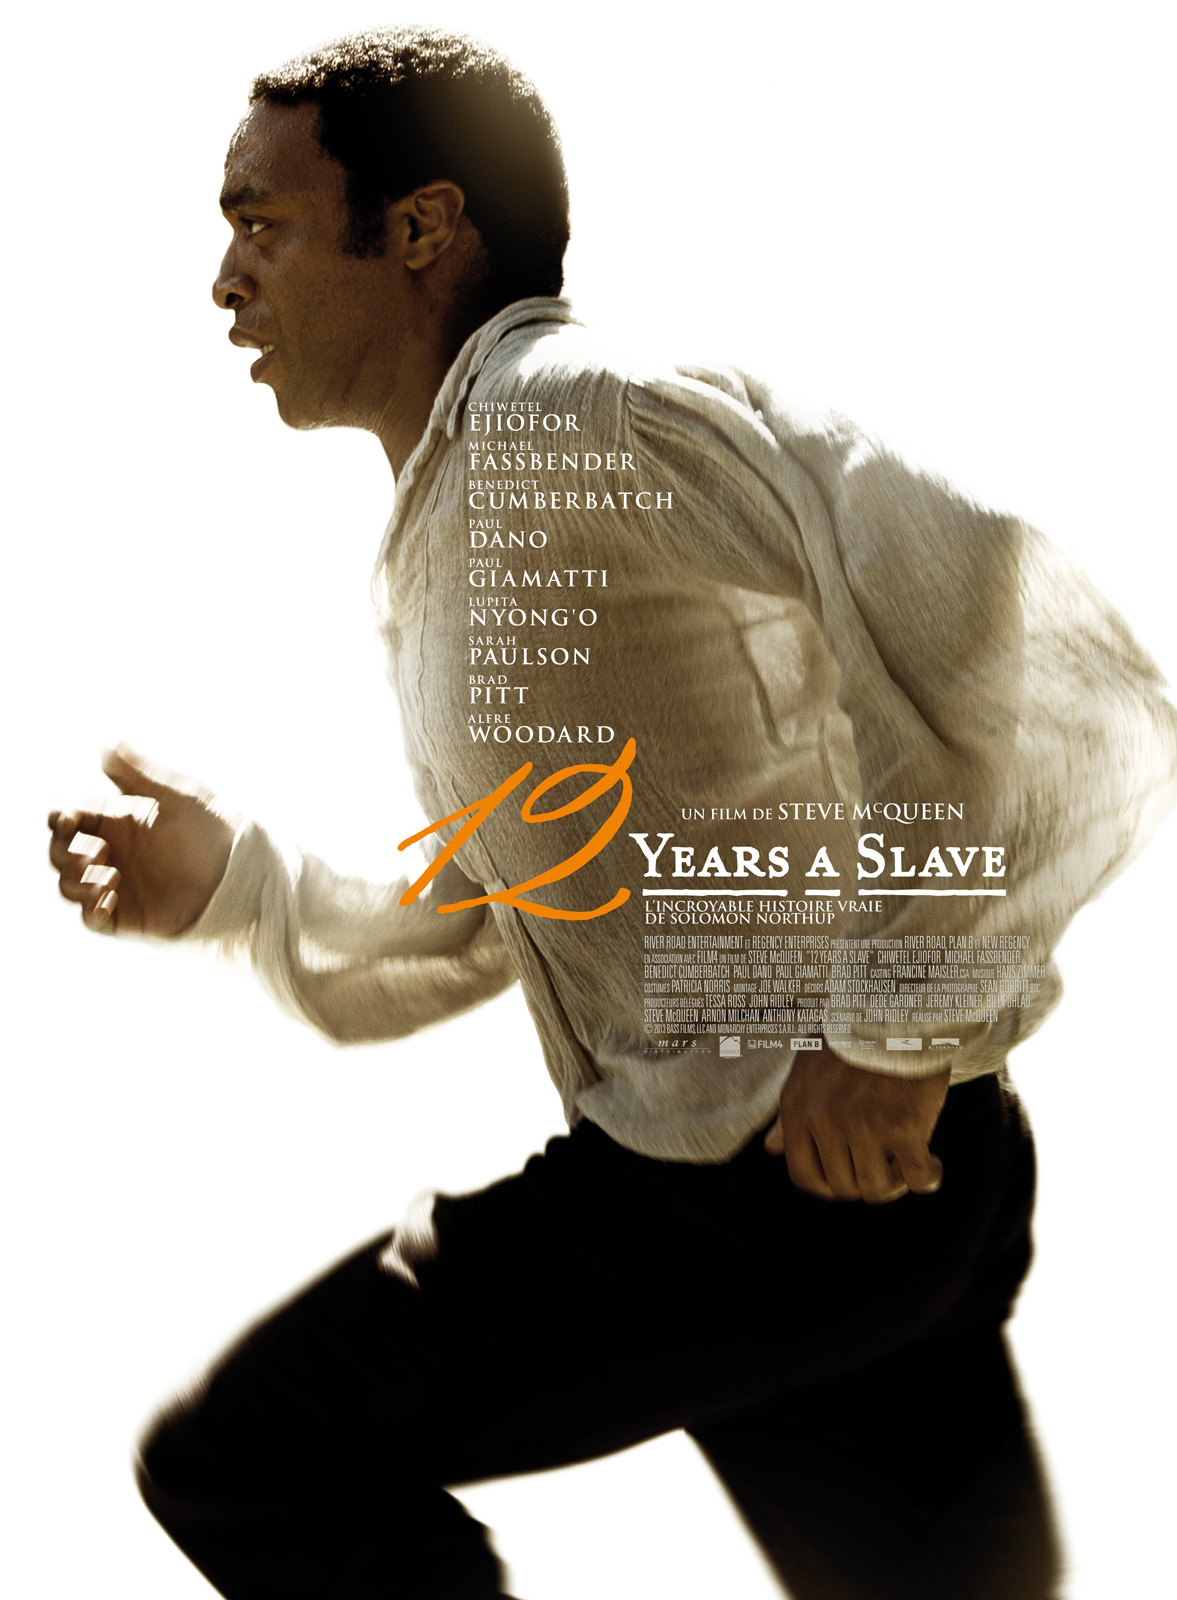 Regarder le film 12 Years A Slave en streaming